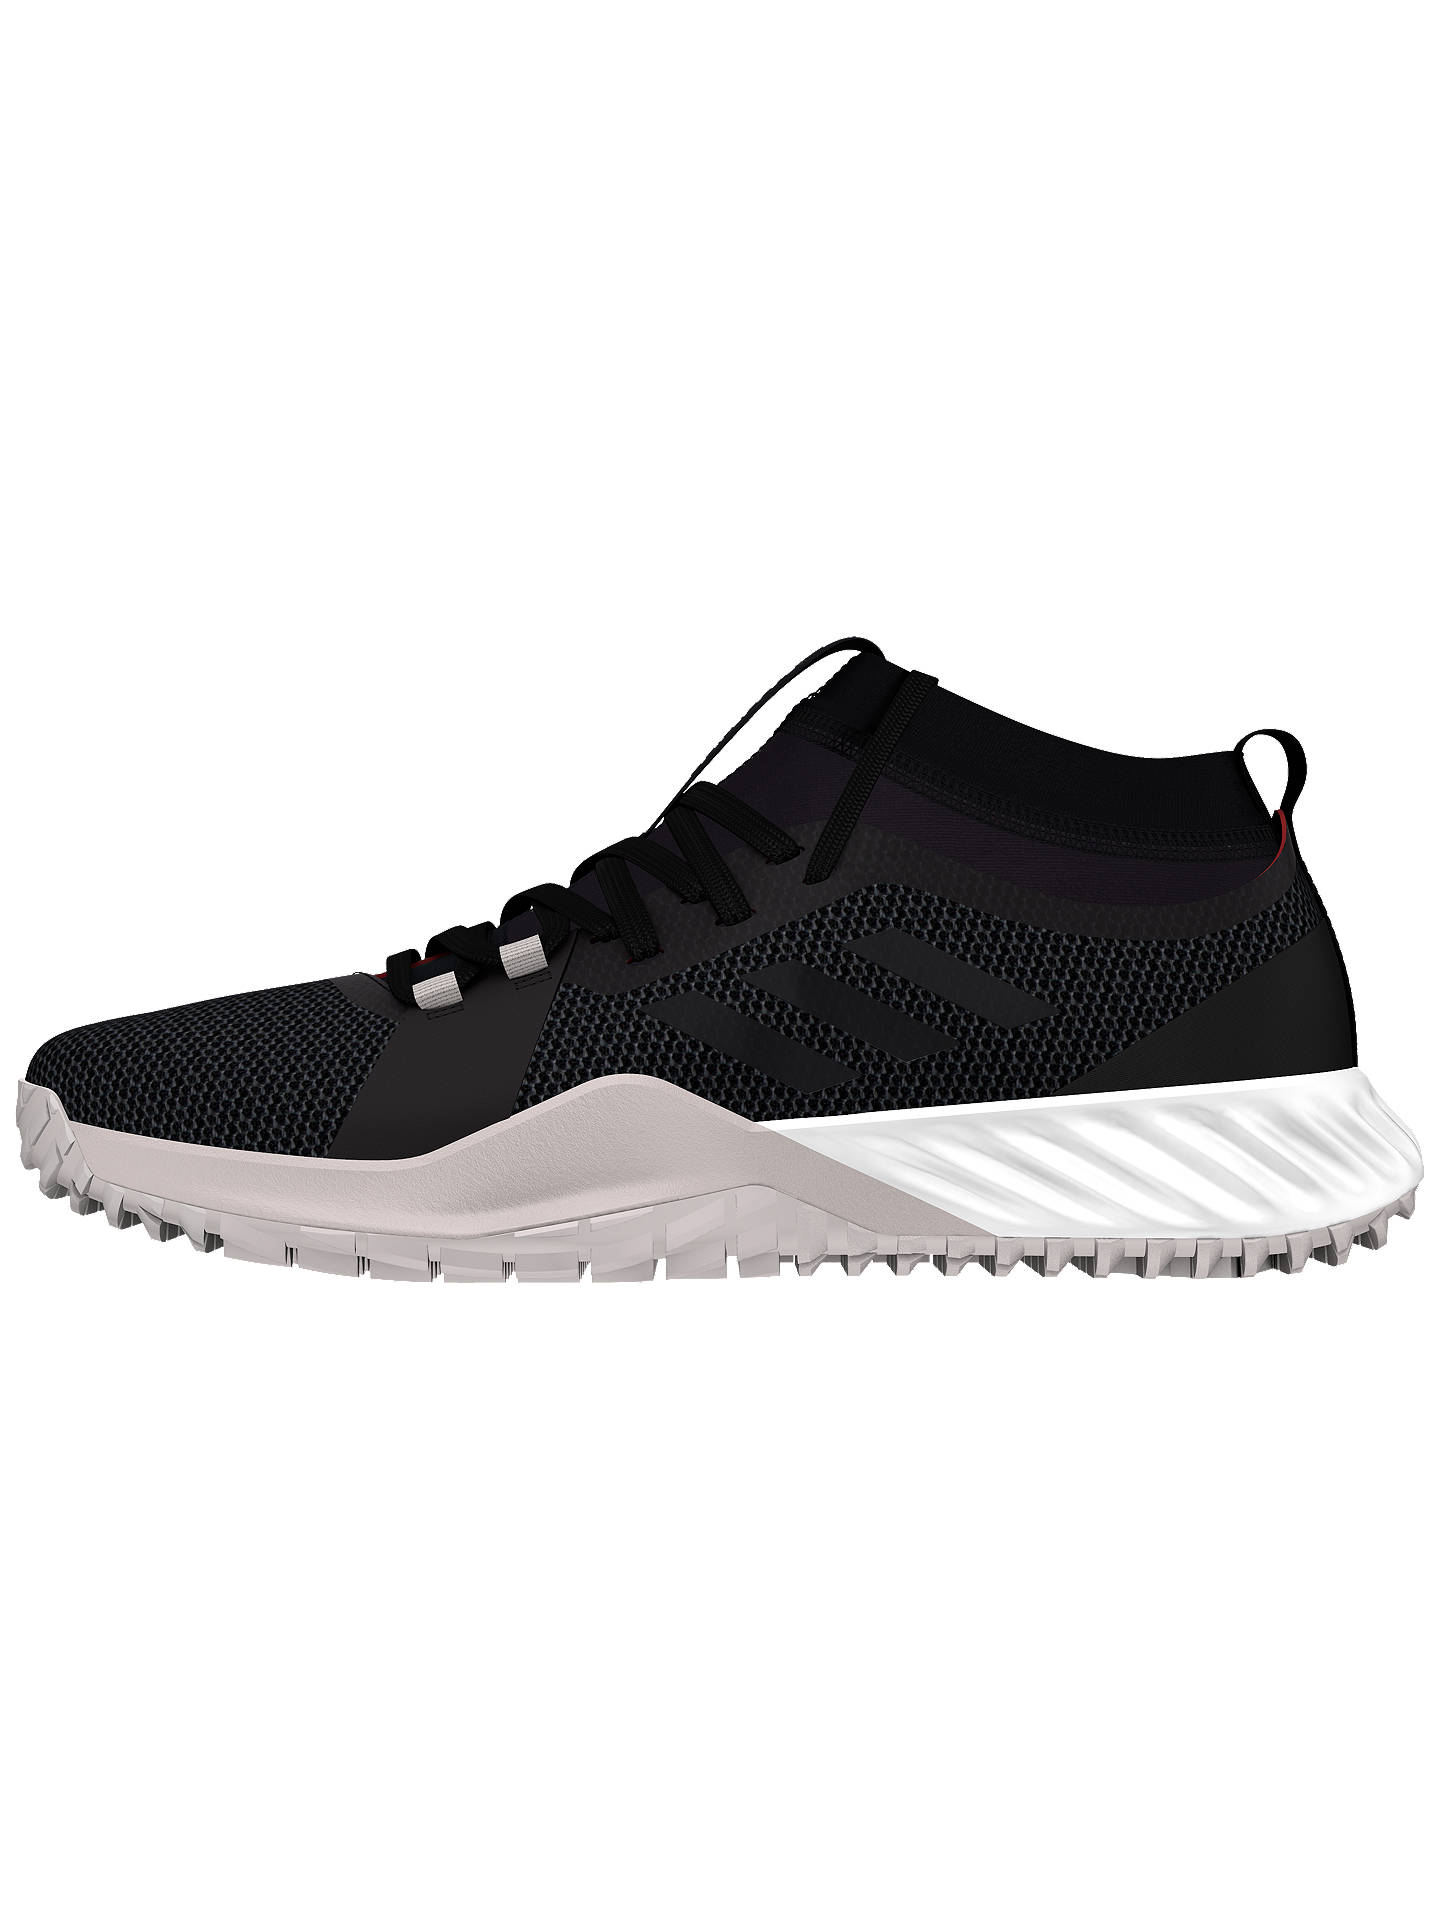 huge discount 6a1e5 307c4 Buyadidas CrazyTrain PRO 3.0 TRF Mens Training Shoes, Carbon, 7 Online at  johnlewis.